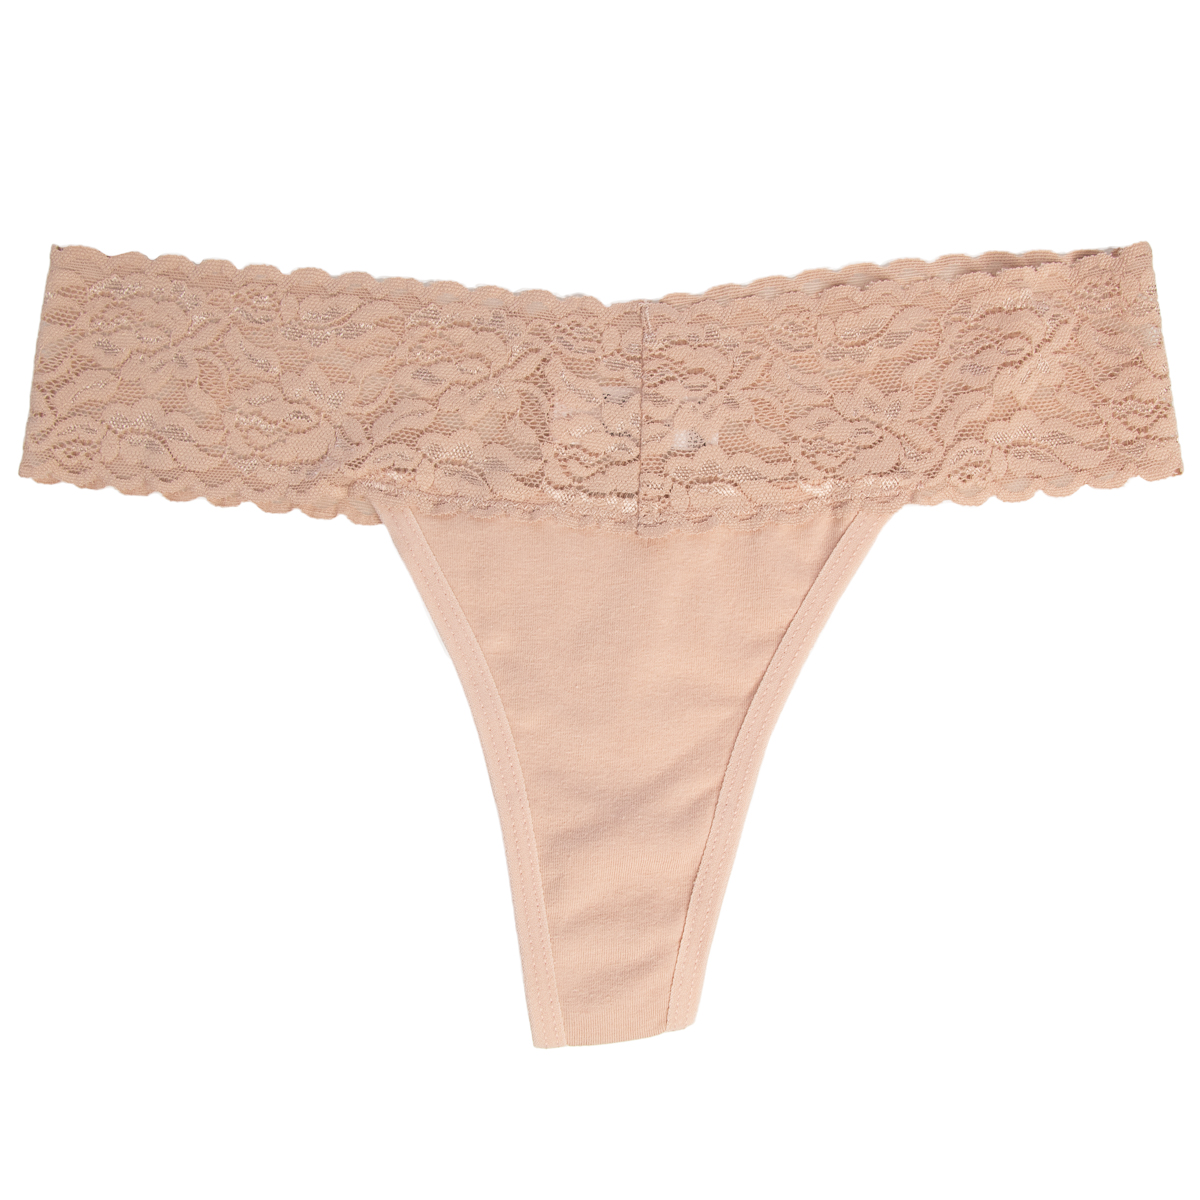 6-Pack-Cotton-Lace-Thong-Underwear-For-Women-Soft-Sexy-Lingerie-Panties-Thongs thumbnail 10